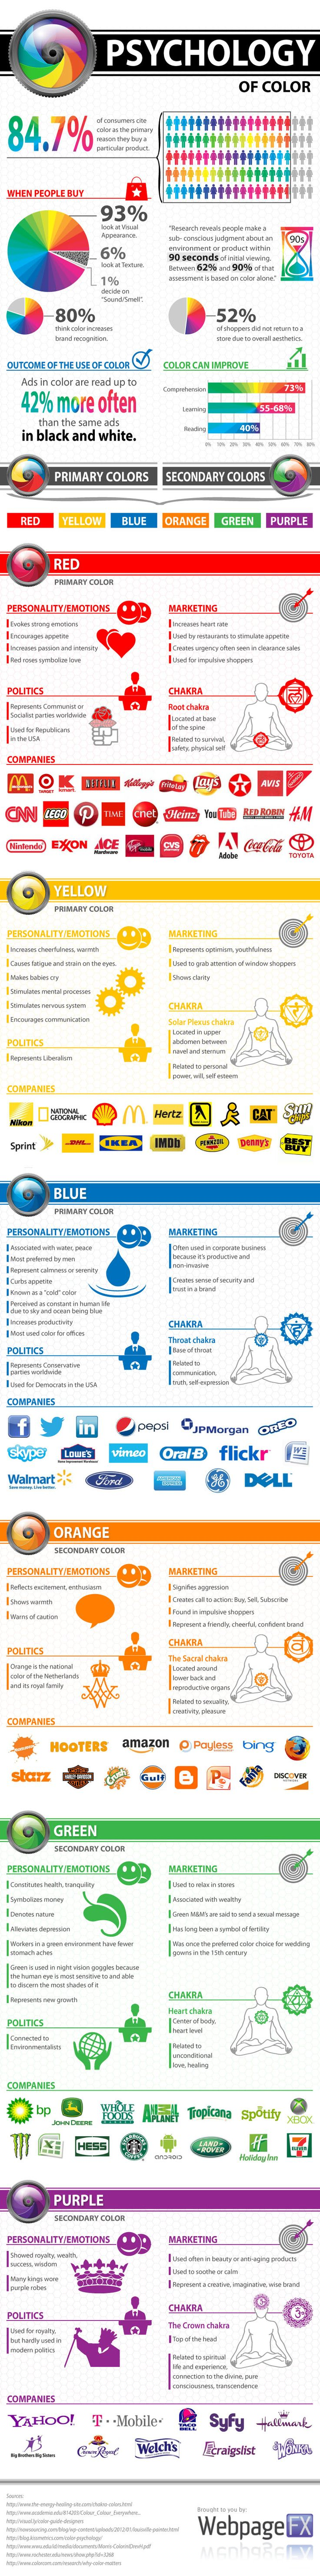 Psychology-Infographic-psychology-of-color.jpg-800×6443 Psychology Infographic : psychology-of-color.jpg (800×6443)